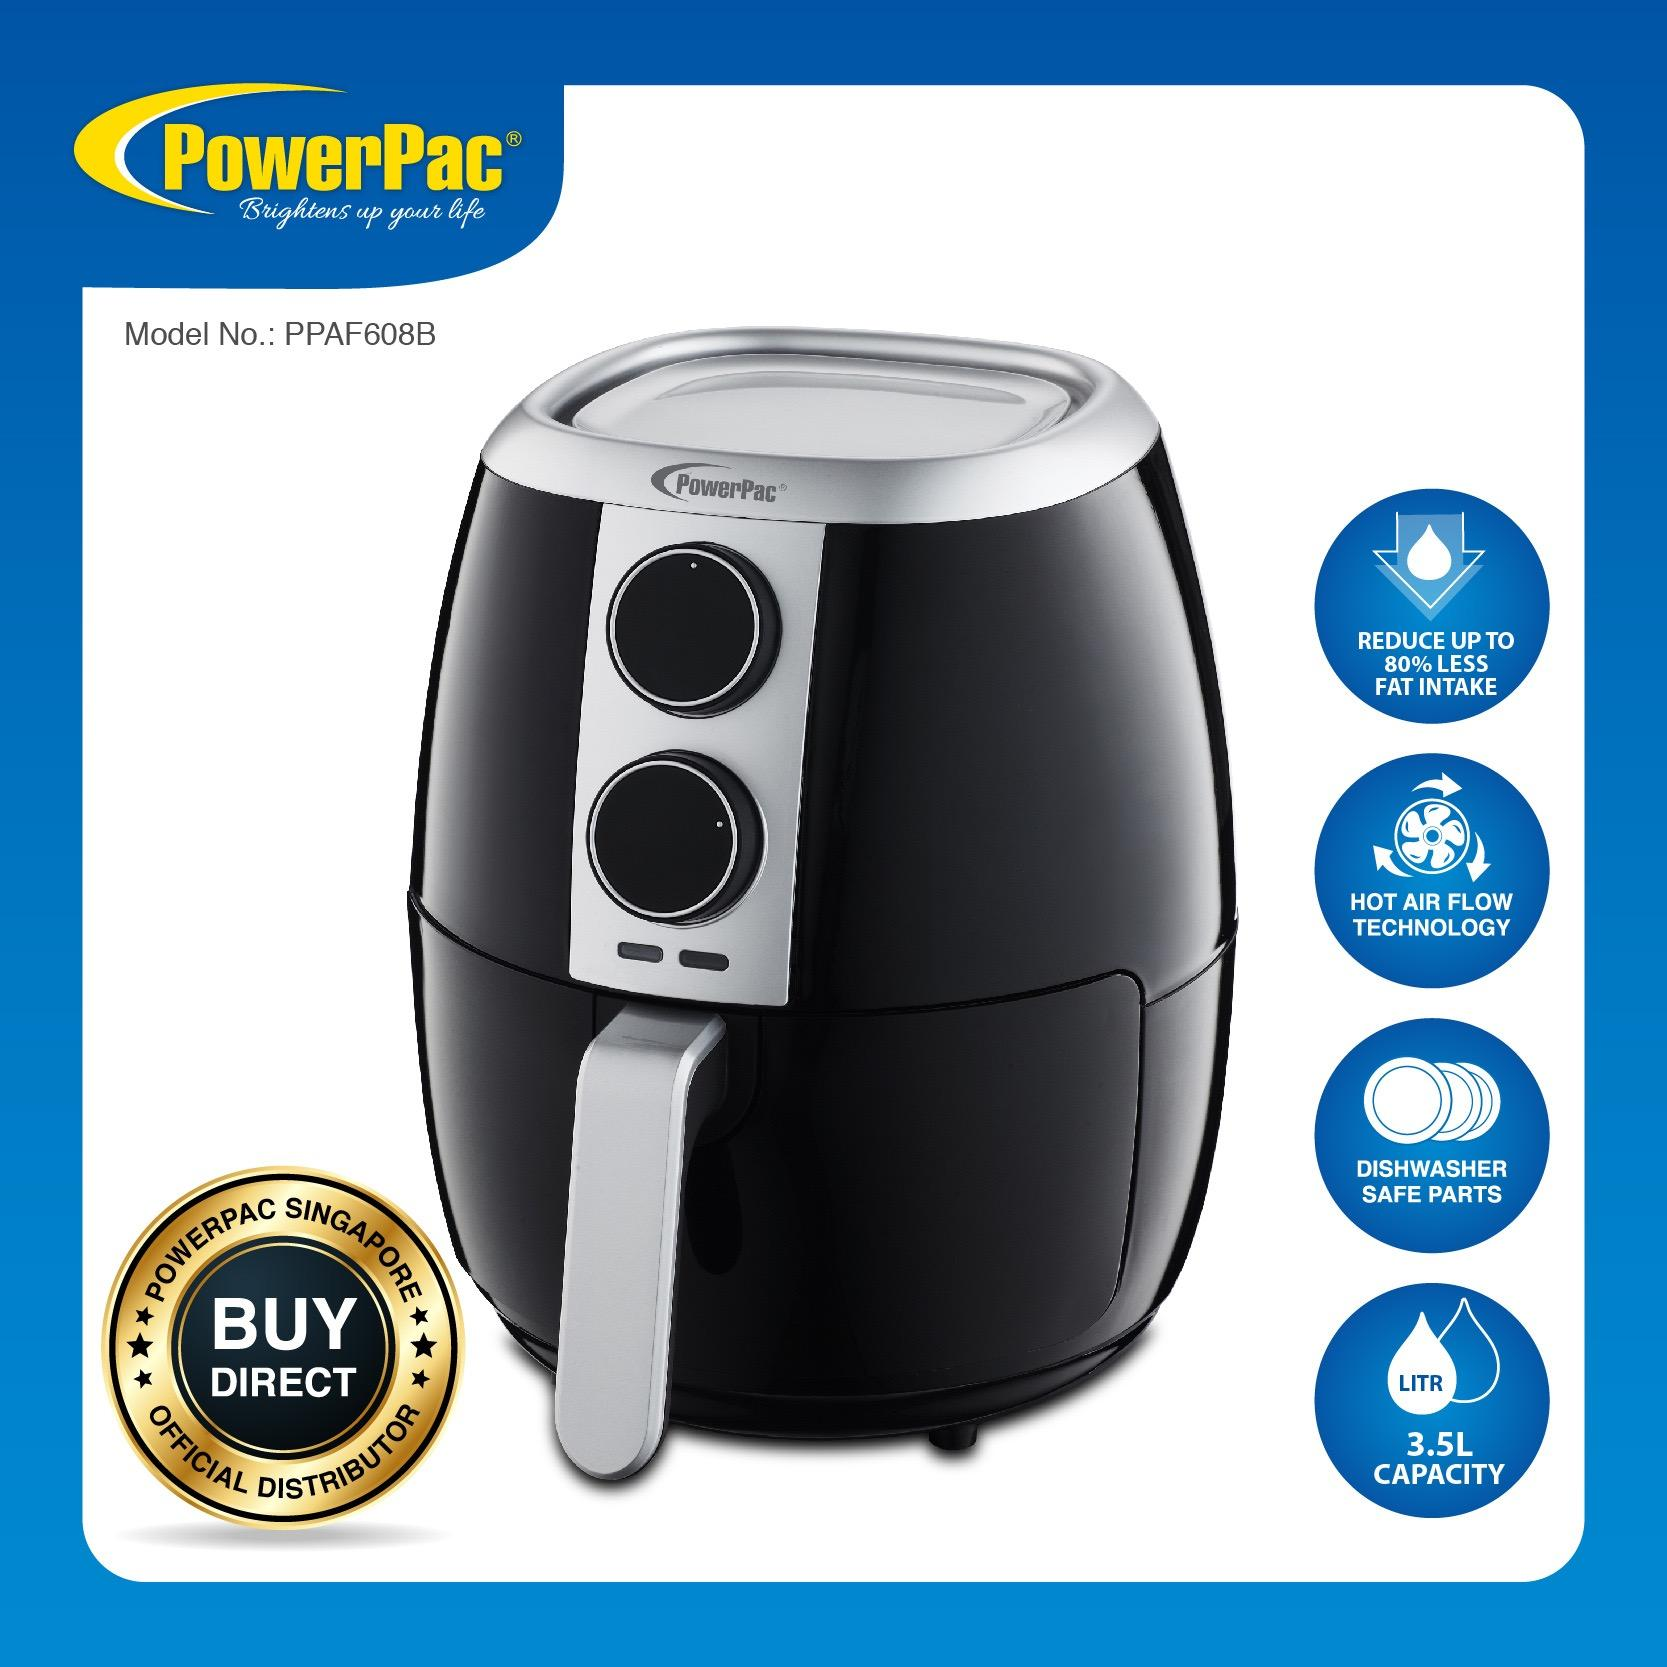 Compare Prices For Powerpac Air Fryer 3 5L With Hot Air Flow System Ppaf608